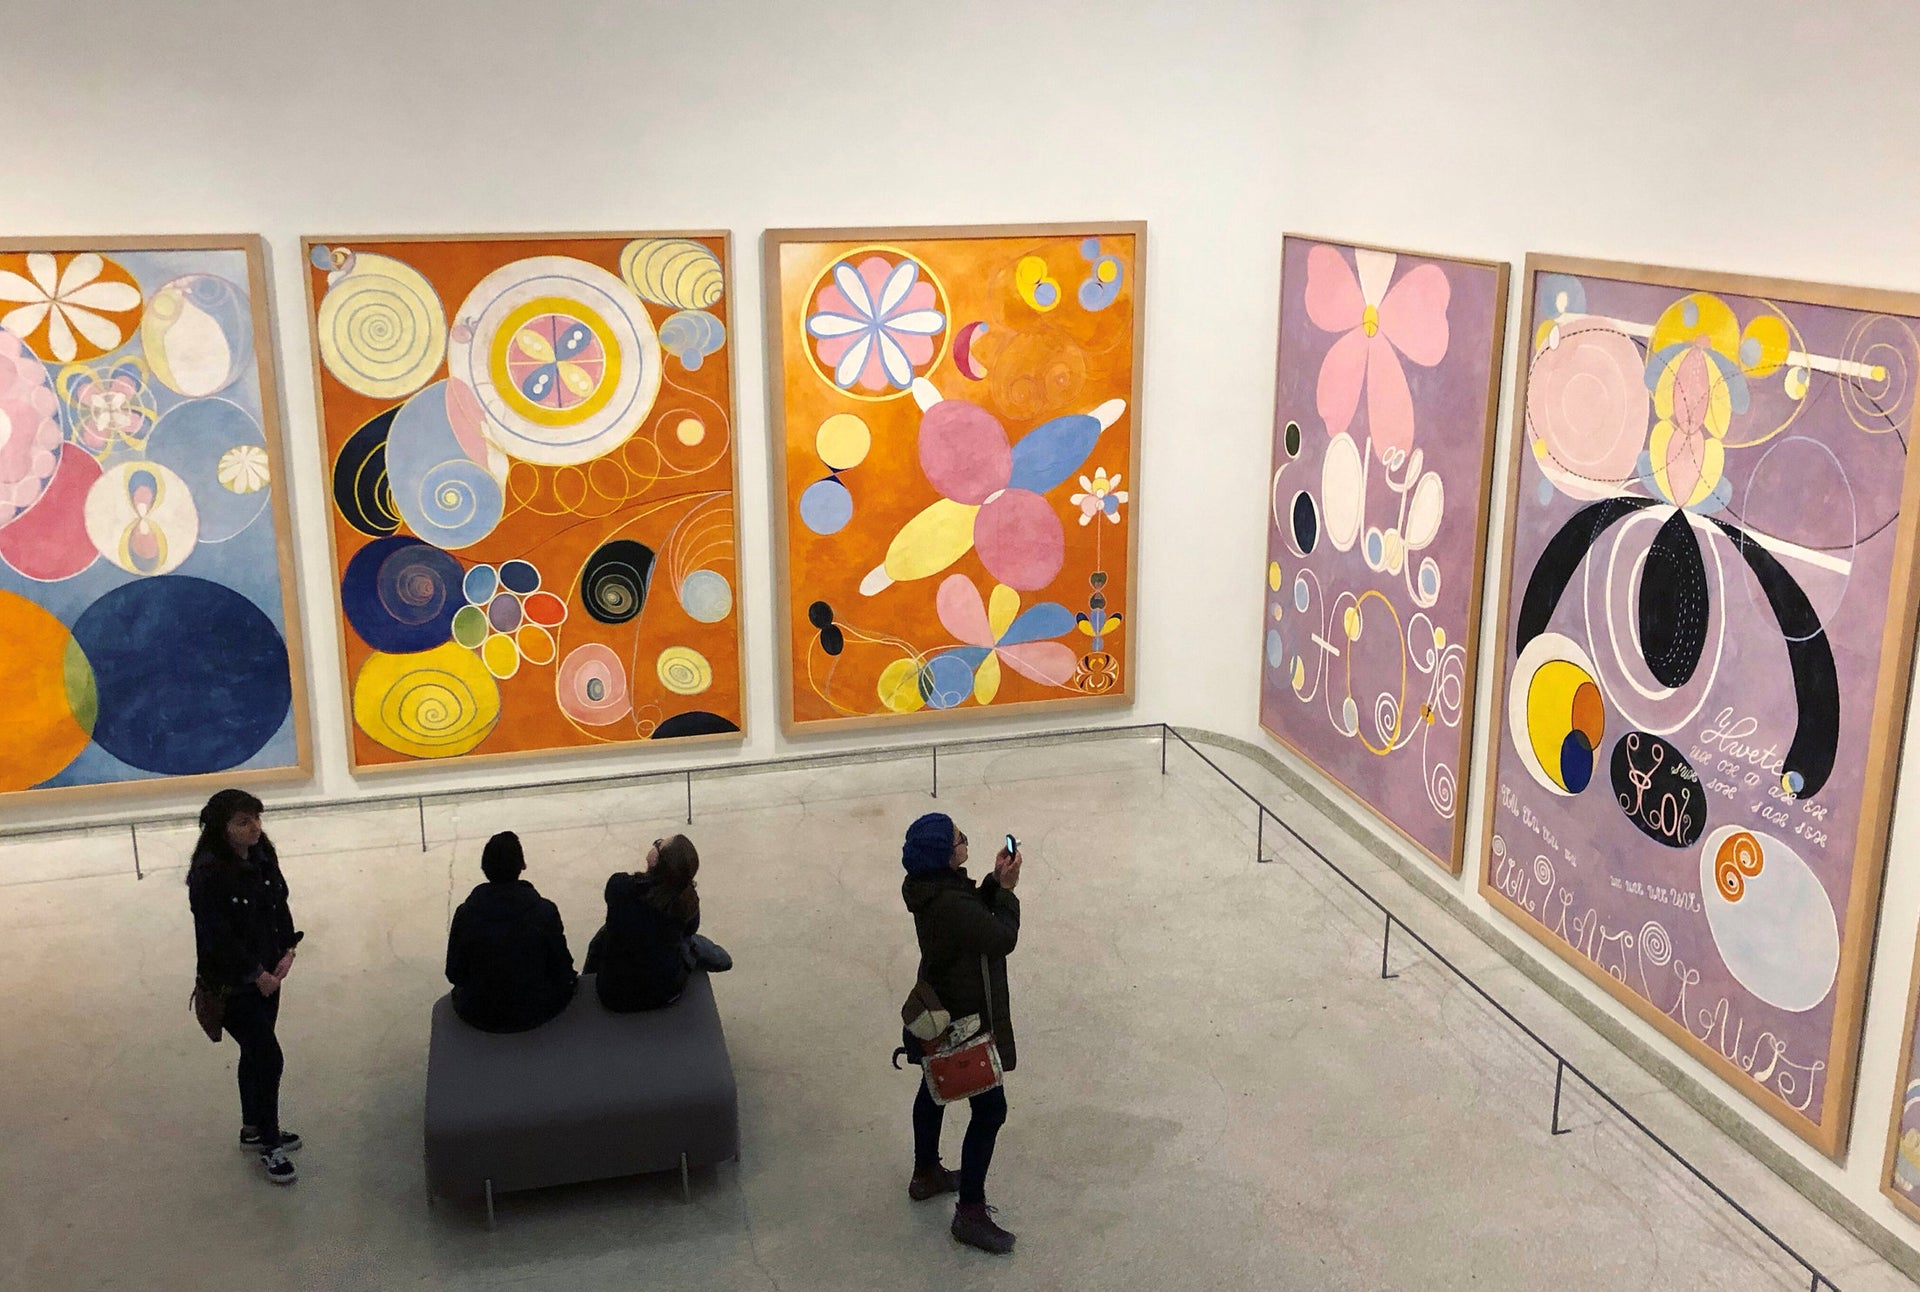 Hilma af Klint's show at the Guggenheim in New York.